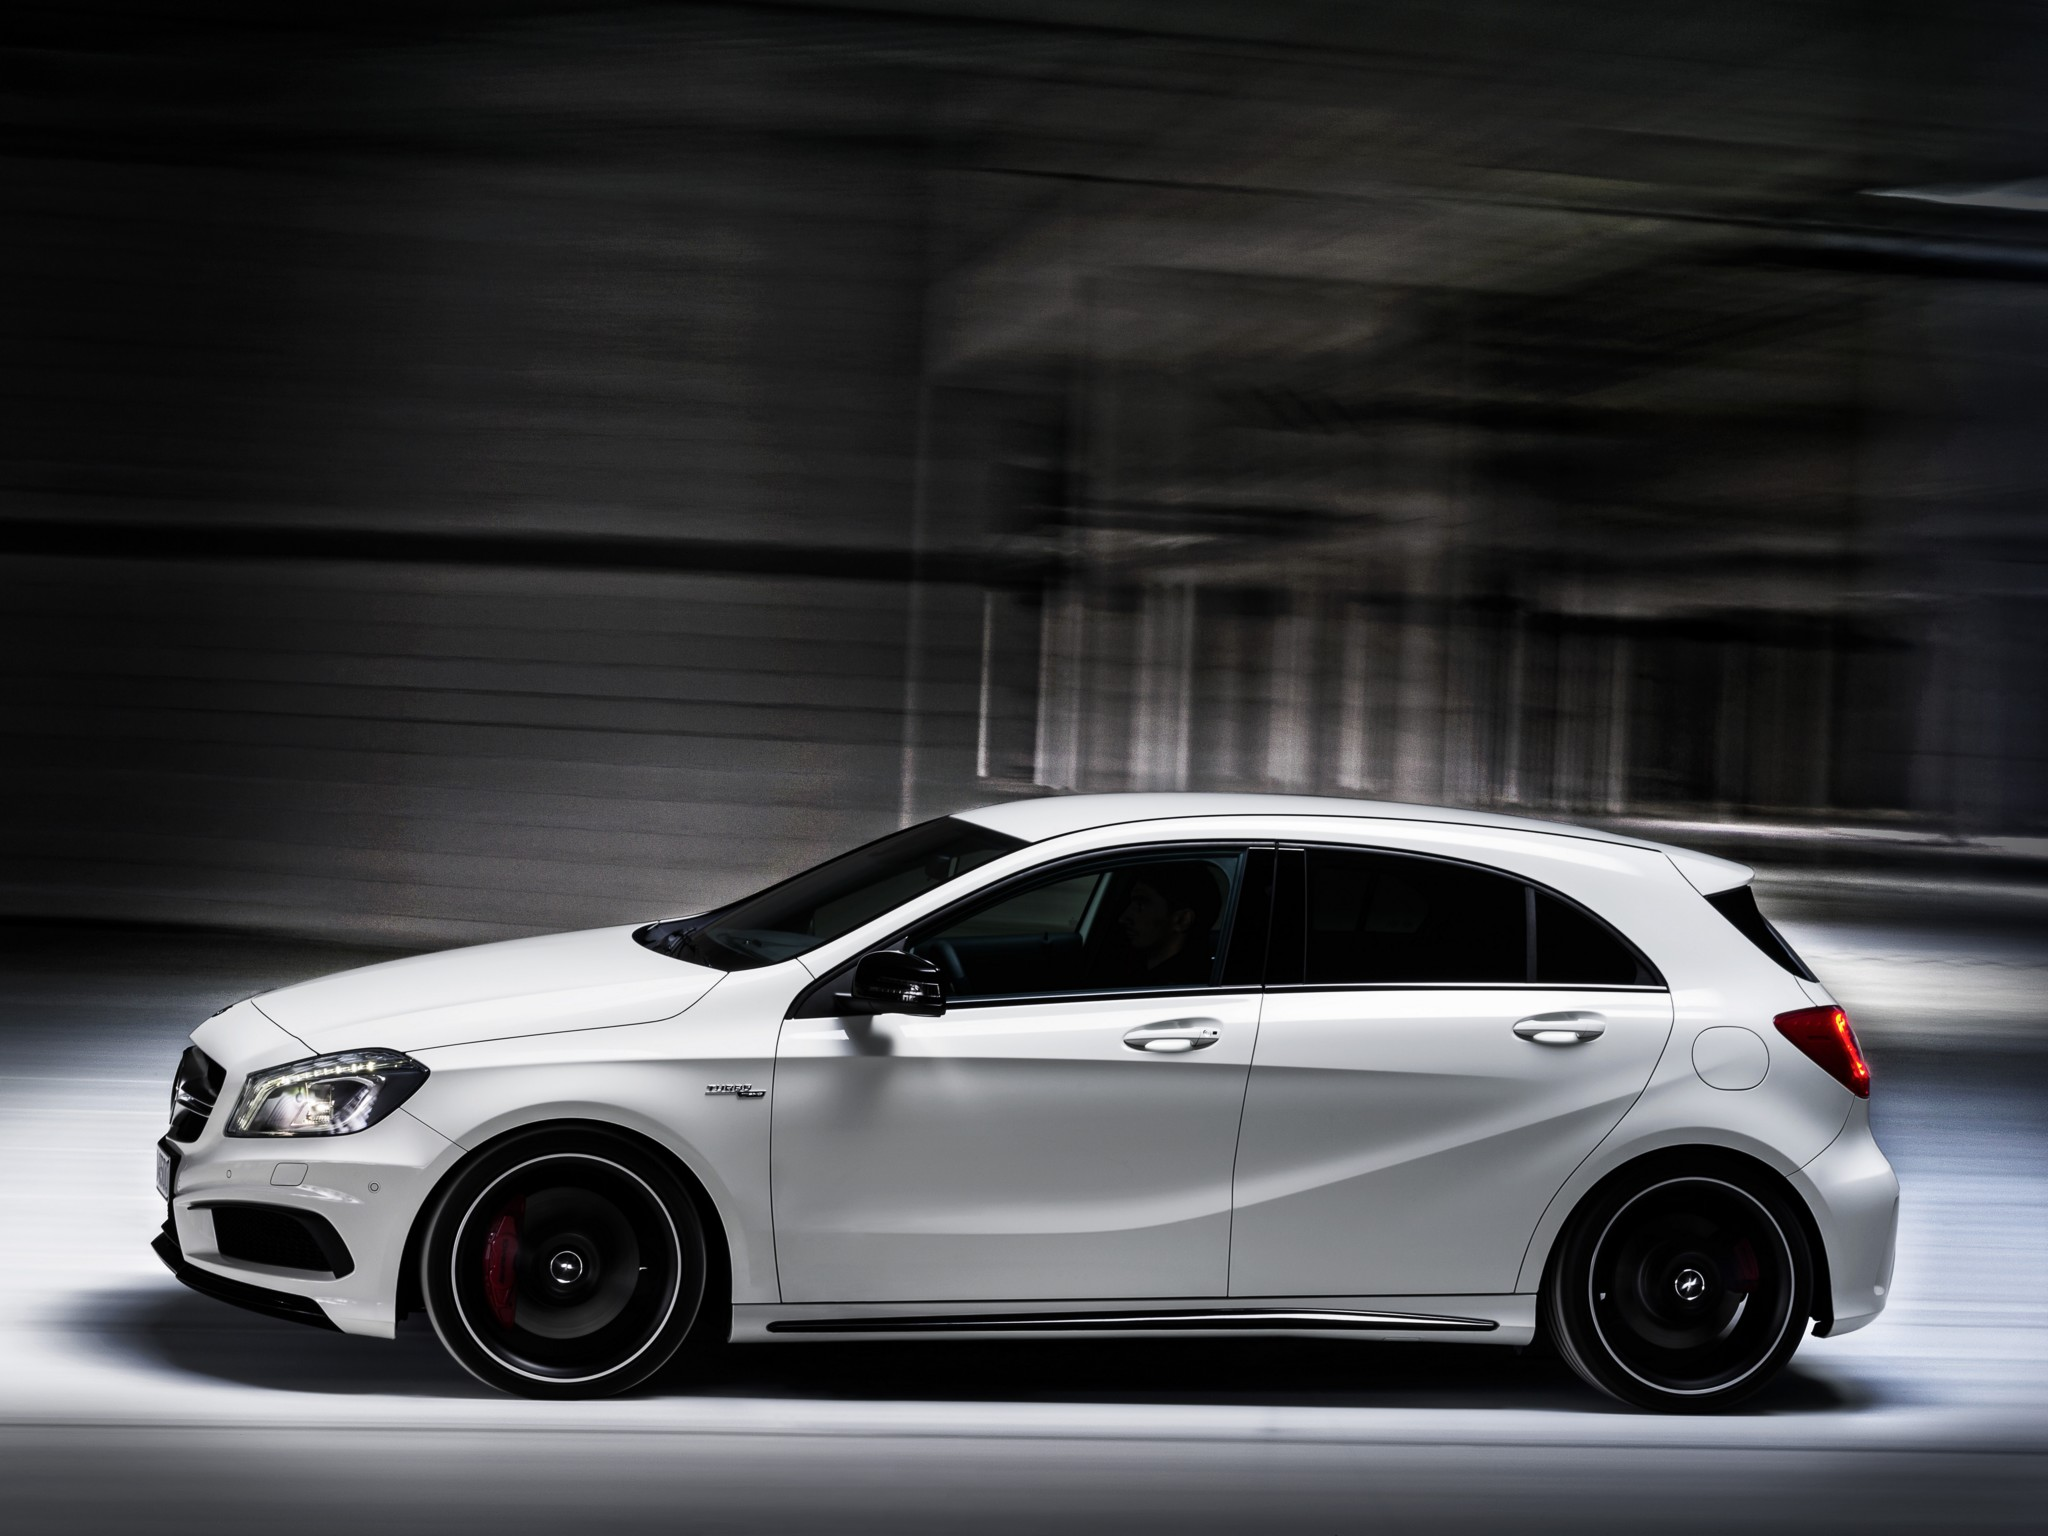 mercedes benz a45 amg w176 specs 2013 2014 2015 autoevolution. Black Bedroom Furniture Sets. Home Design Ideas